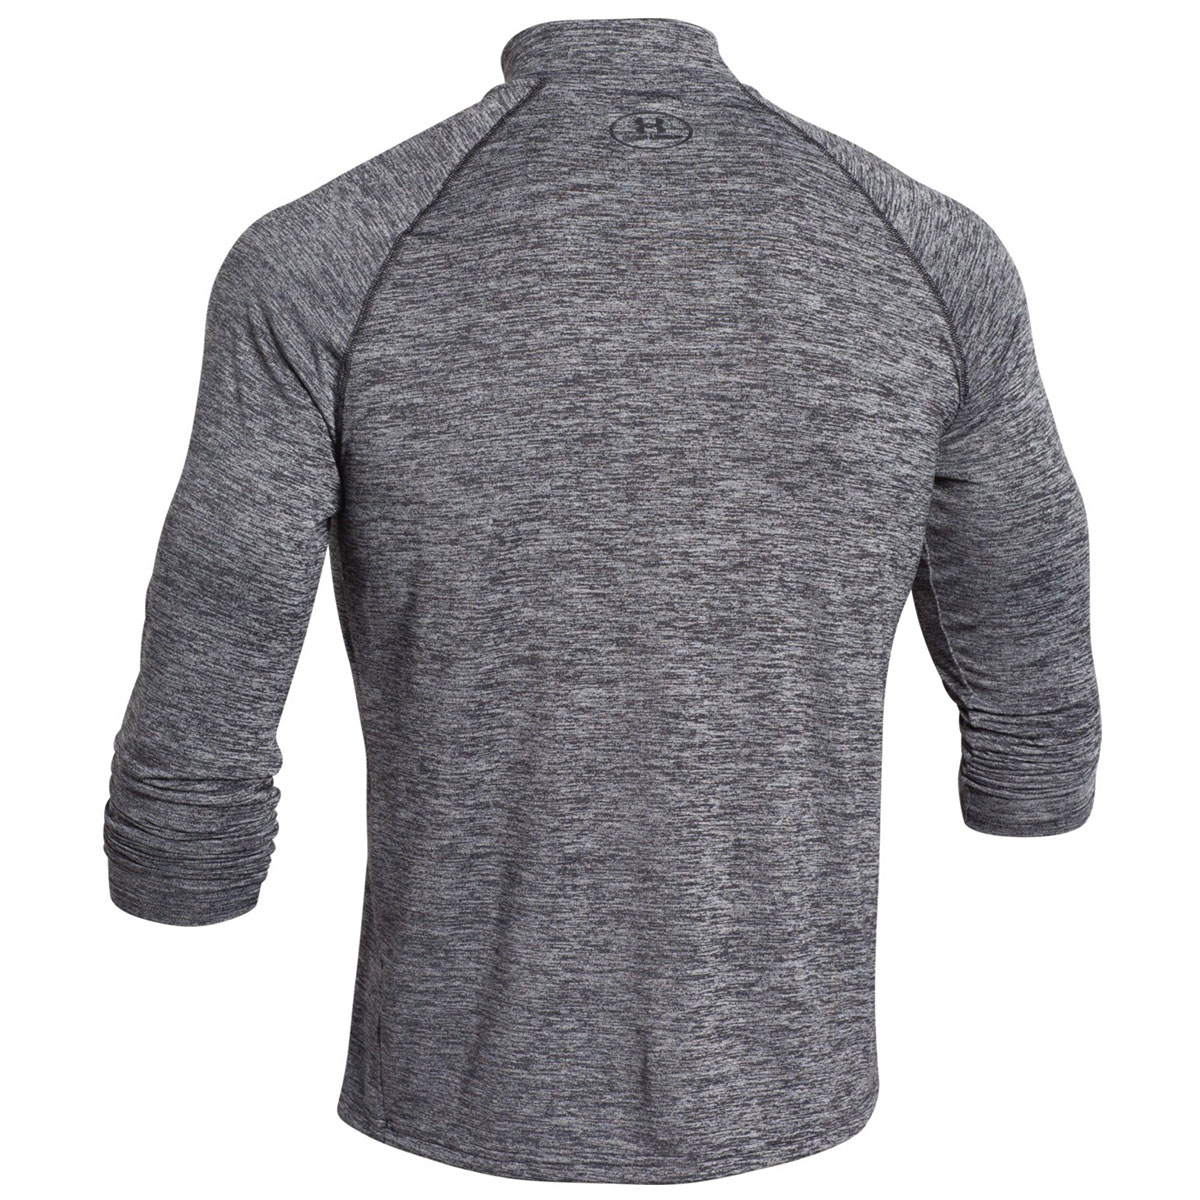 Under-Armour-Mens-UA-Tech-1-4-Zip-Long-Sleeve-Top-Workout-Layer-27-OFF-RRP thumbnail 21